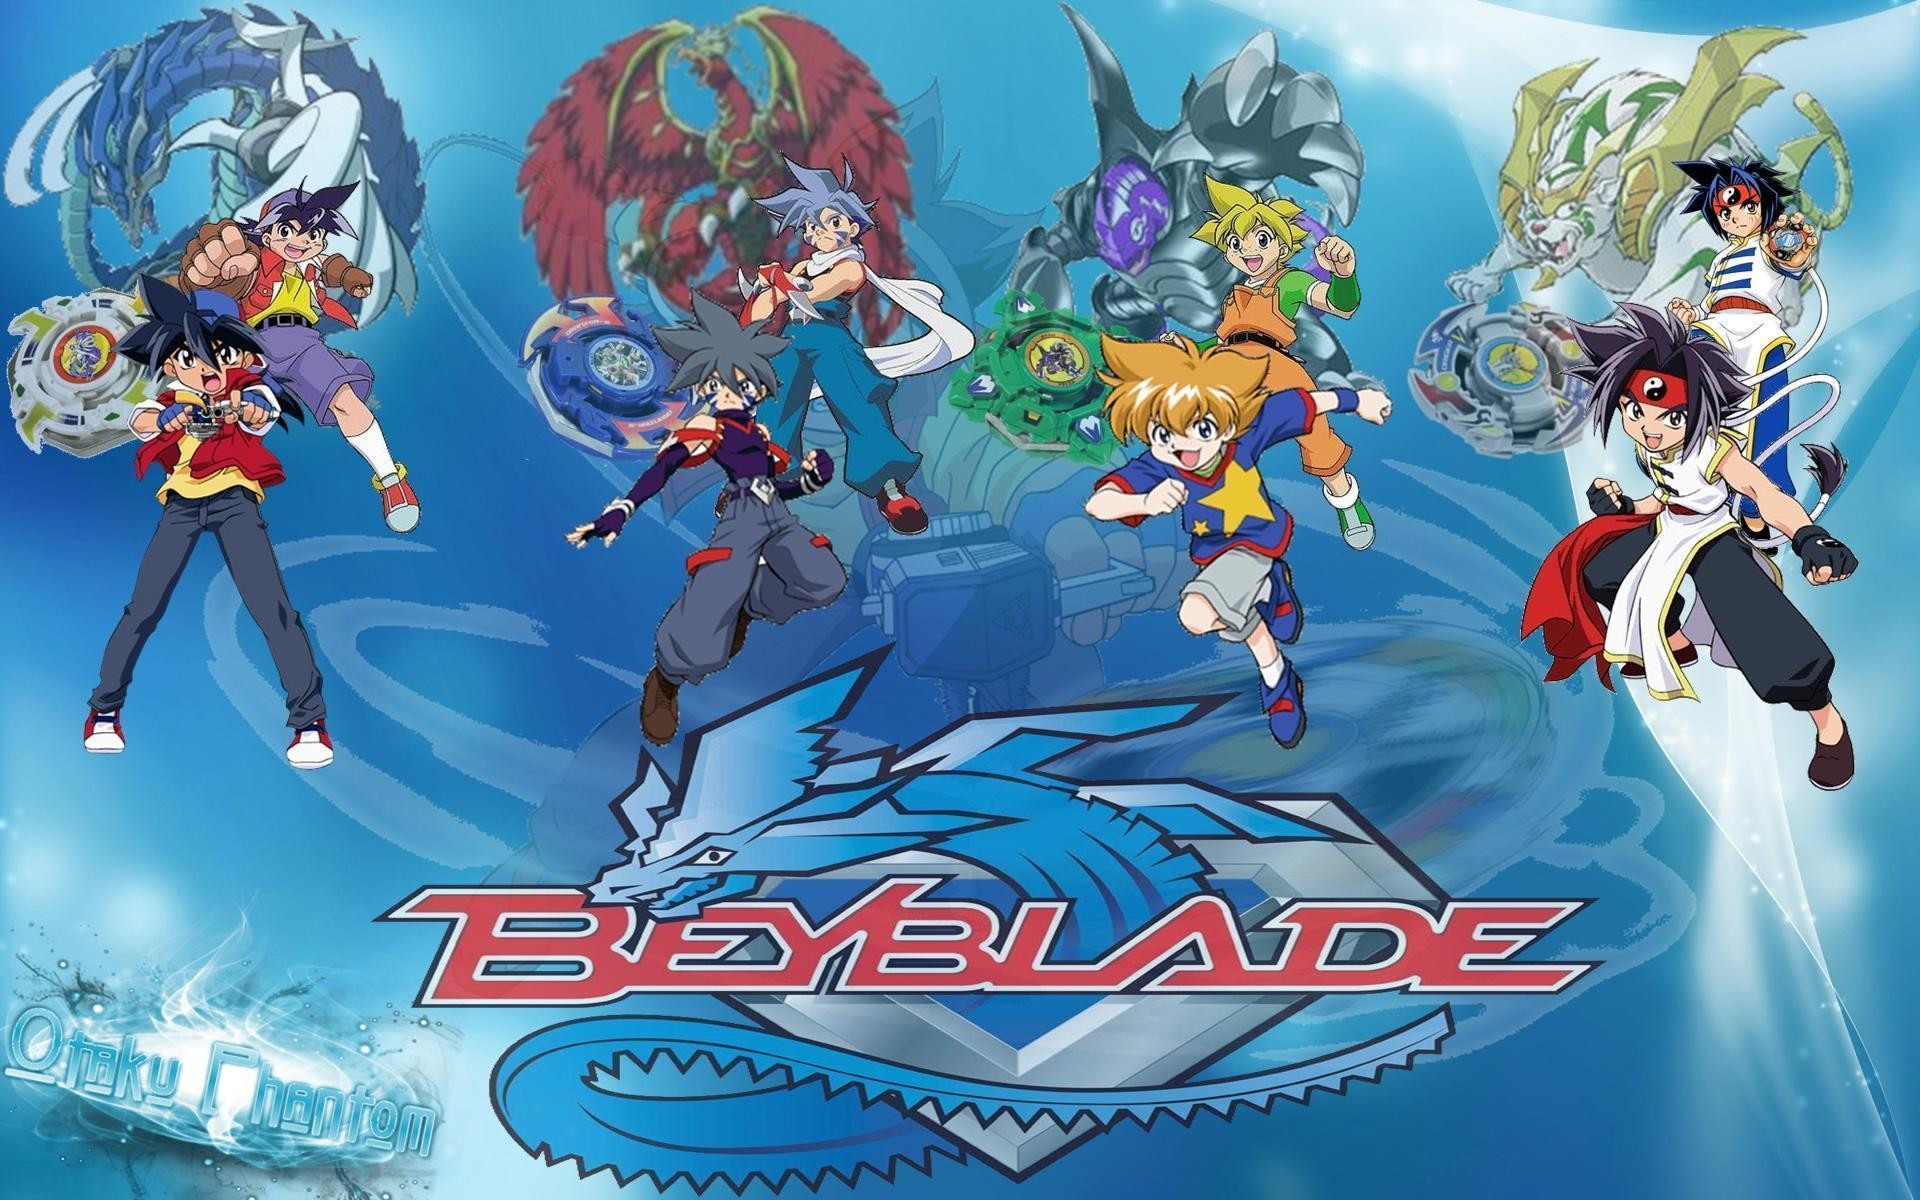 Beyblade wallpaper 54 images 1920x1200 beyblade wallpapers metal fury hd background with taken from voltagebd Images